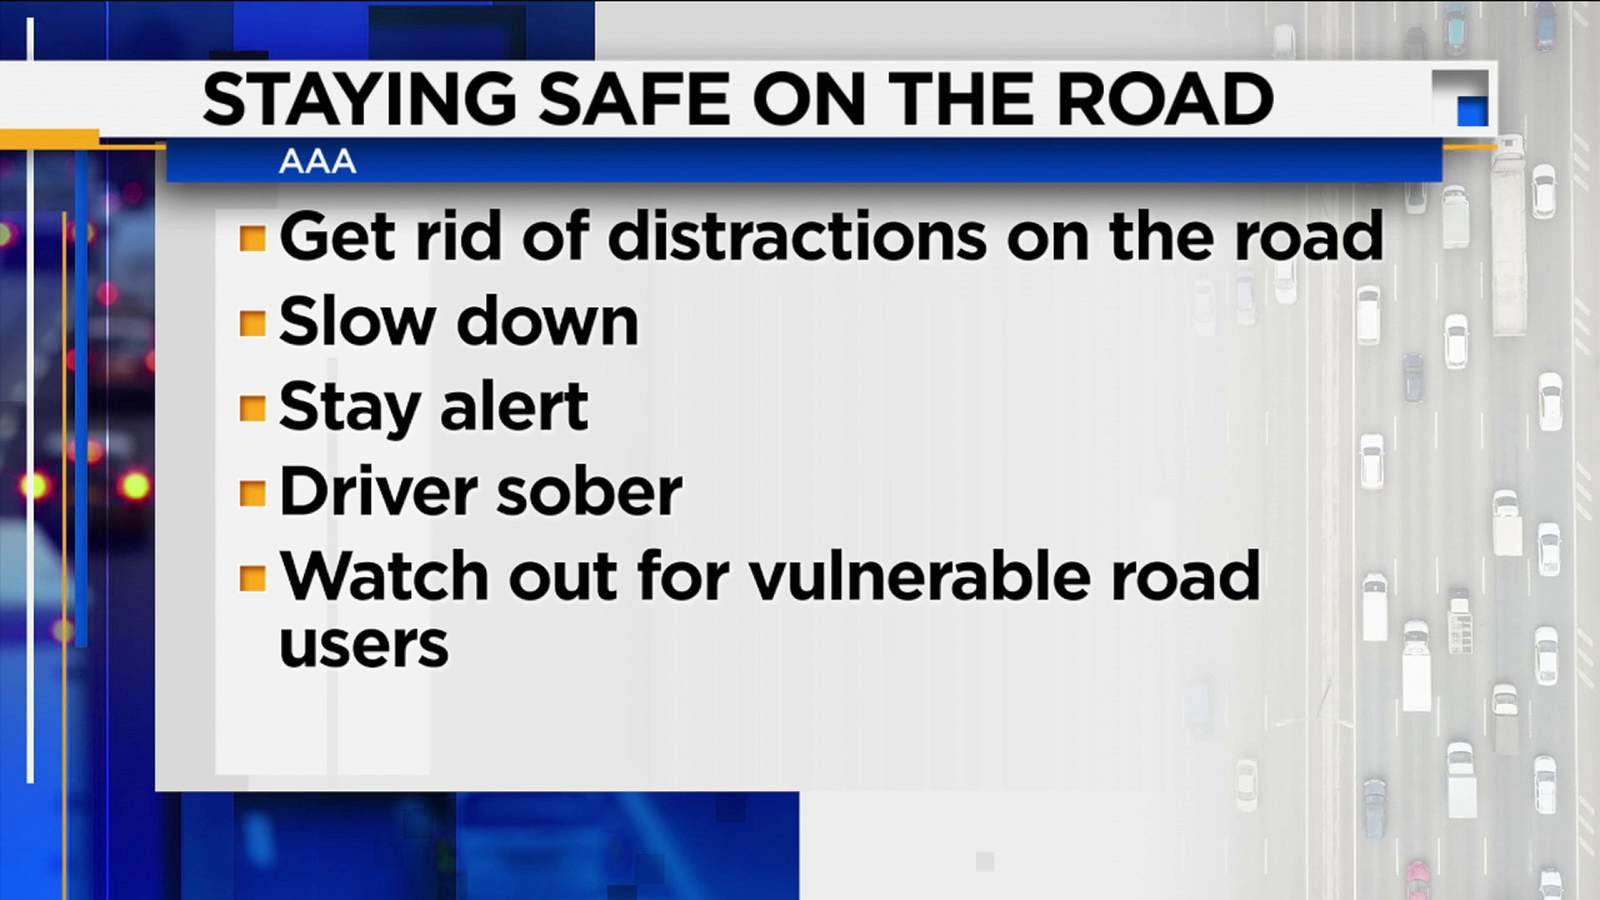 Recent AAA survey shows drivers feel OK taking risks on roads